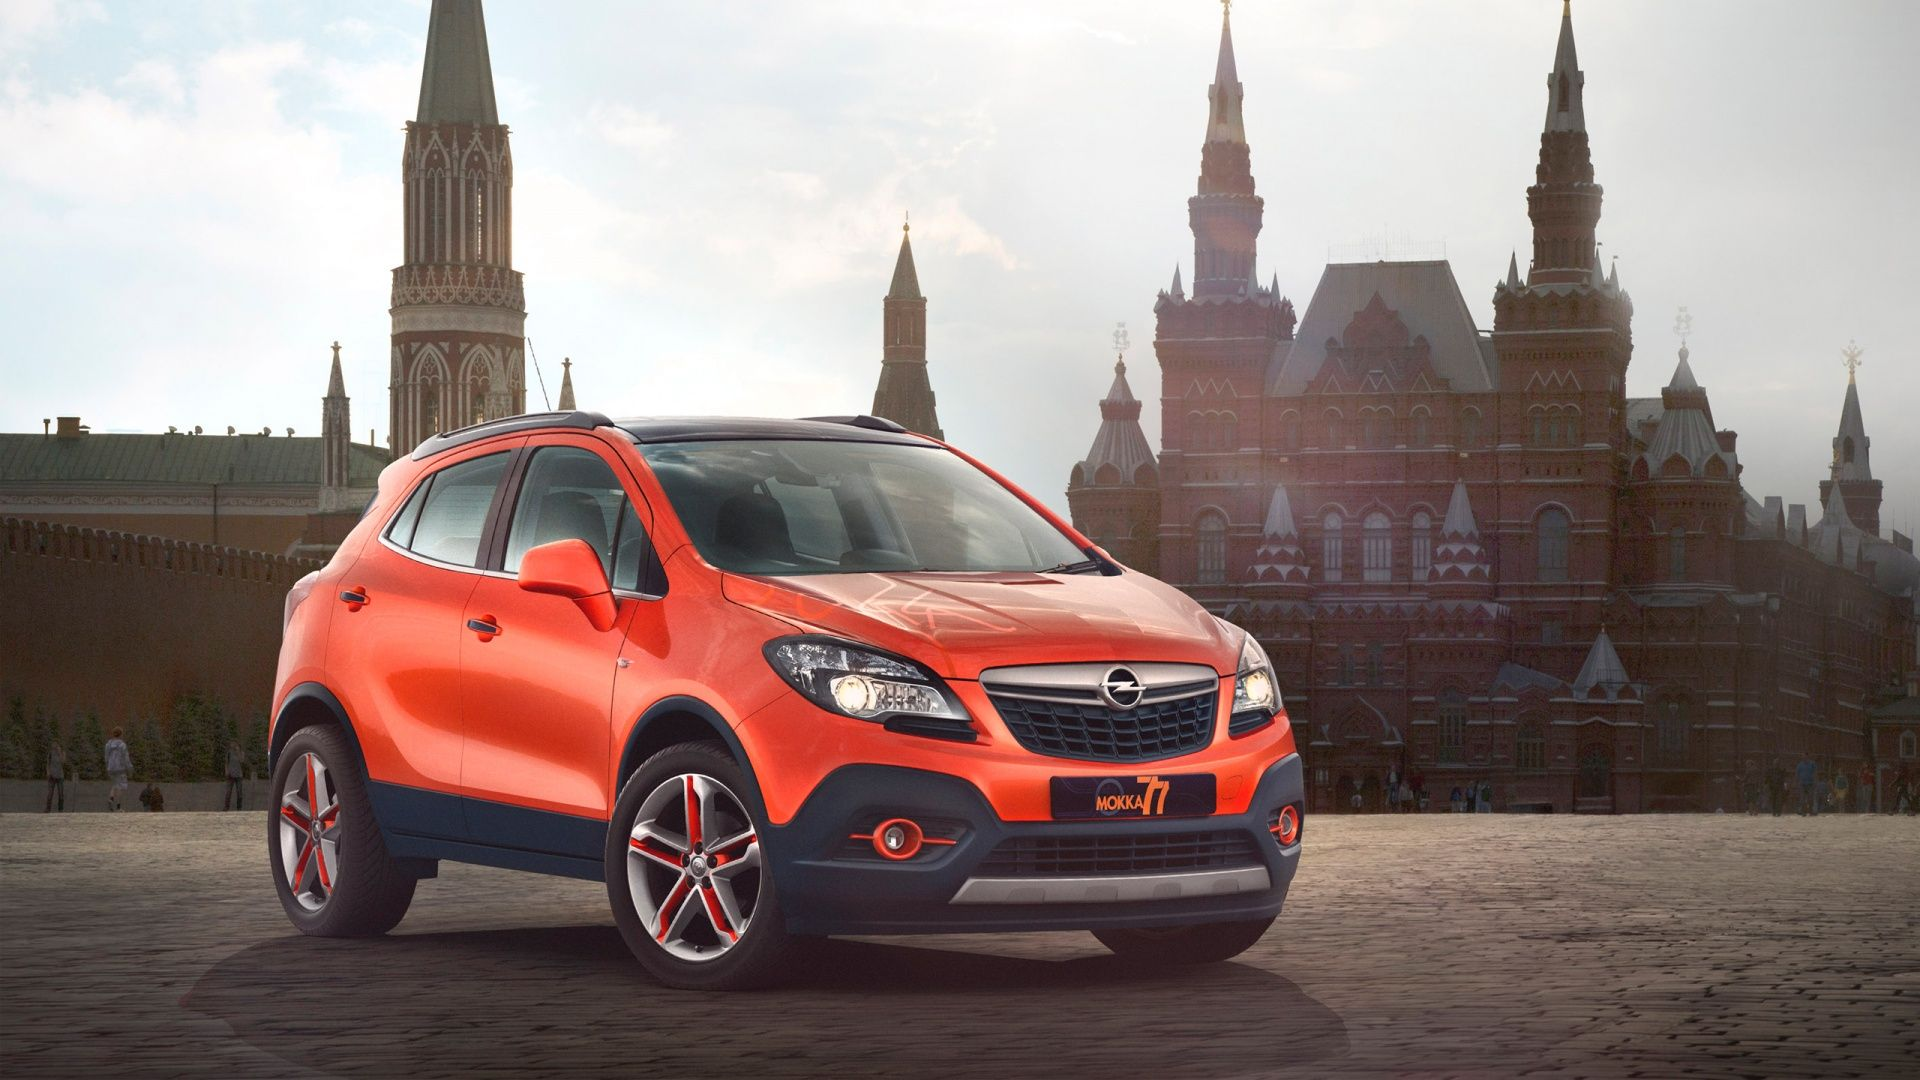 Opel presented at the auto show in moscow the mokka moscow edition and although it sounds and looks like a special version of the popular small suv